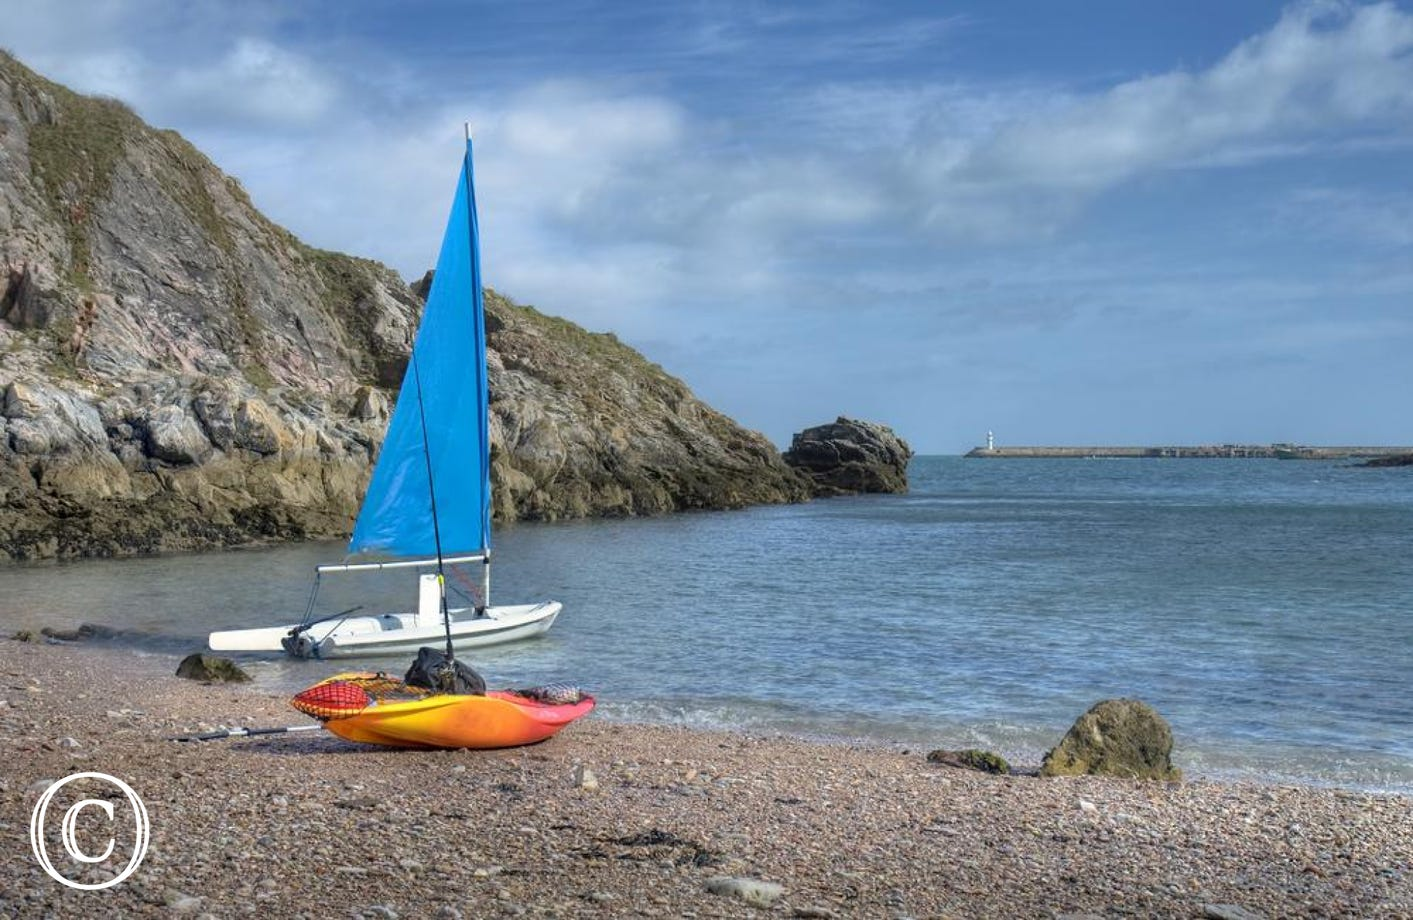 Torbay coastline with sail boat on the beach